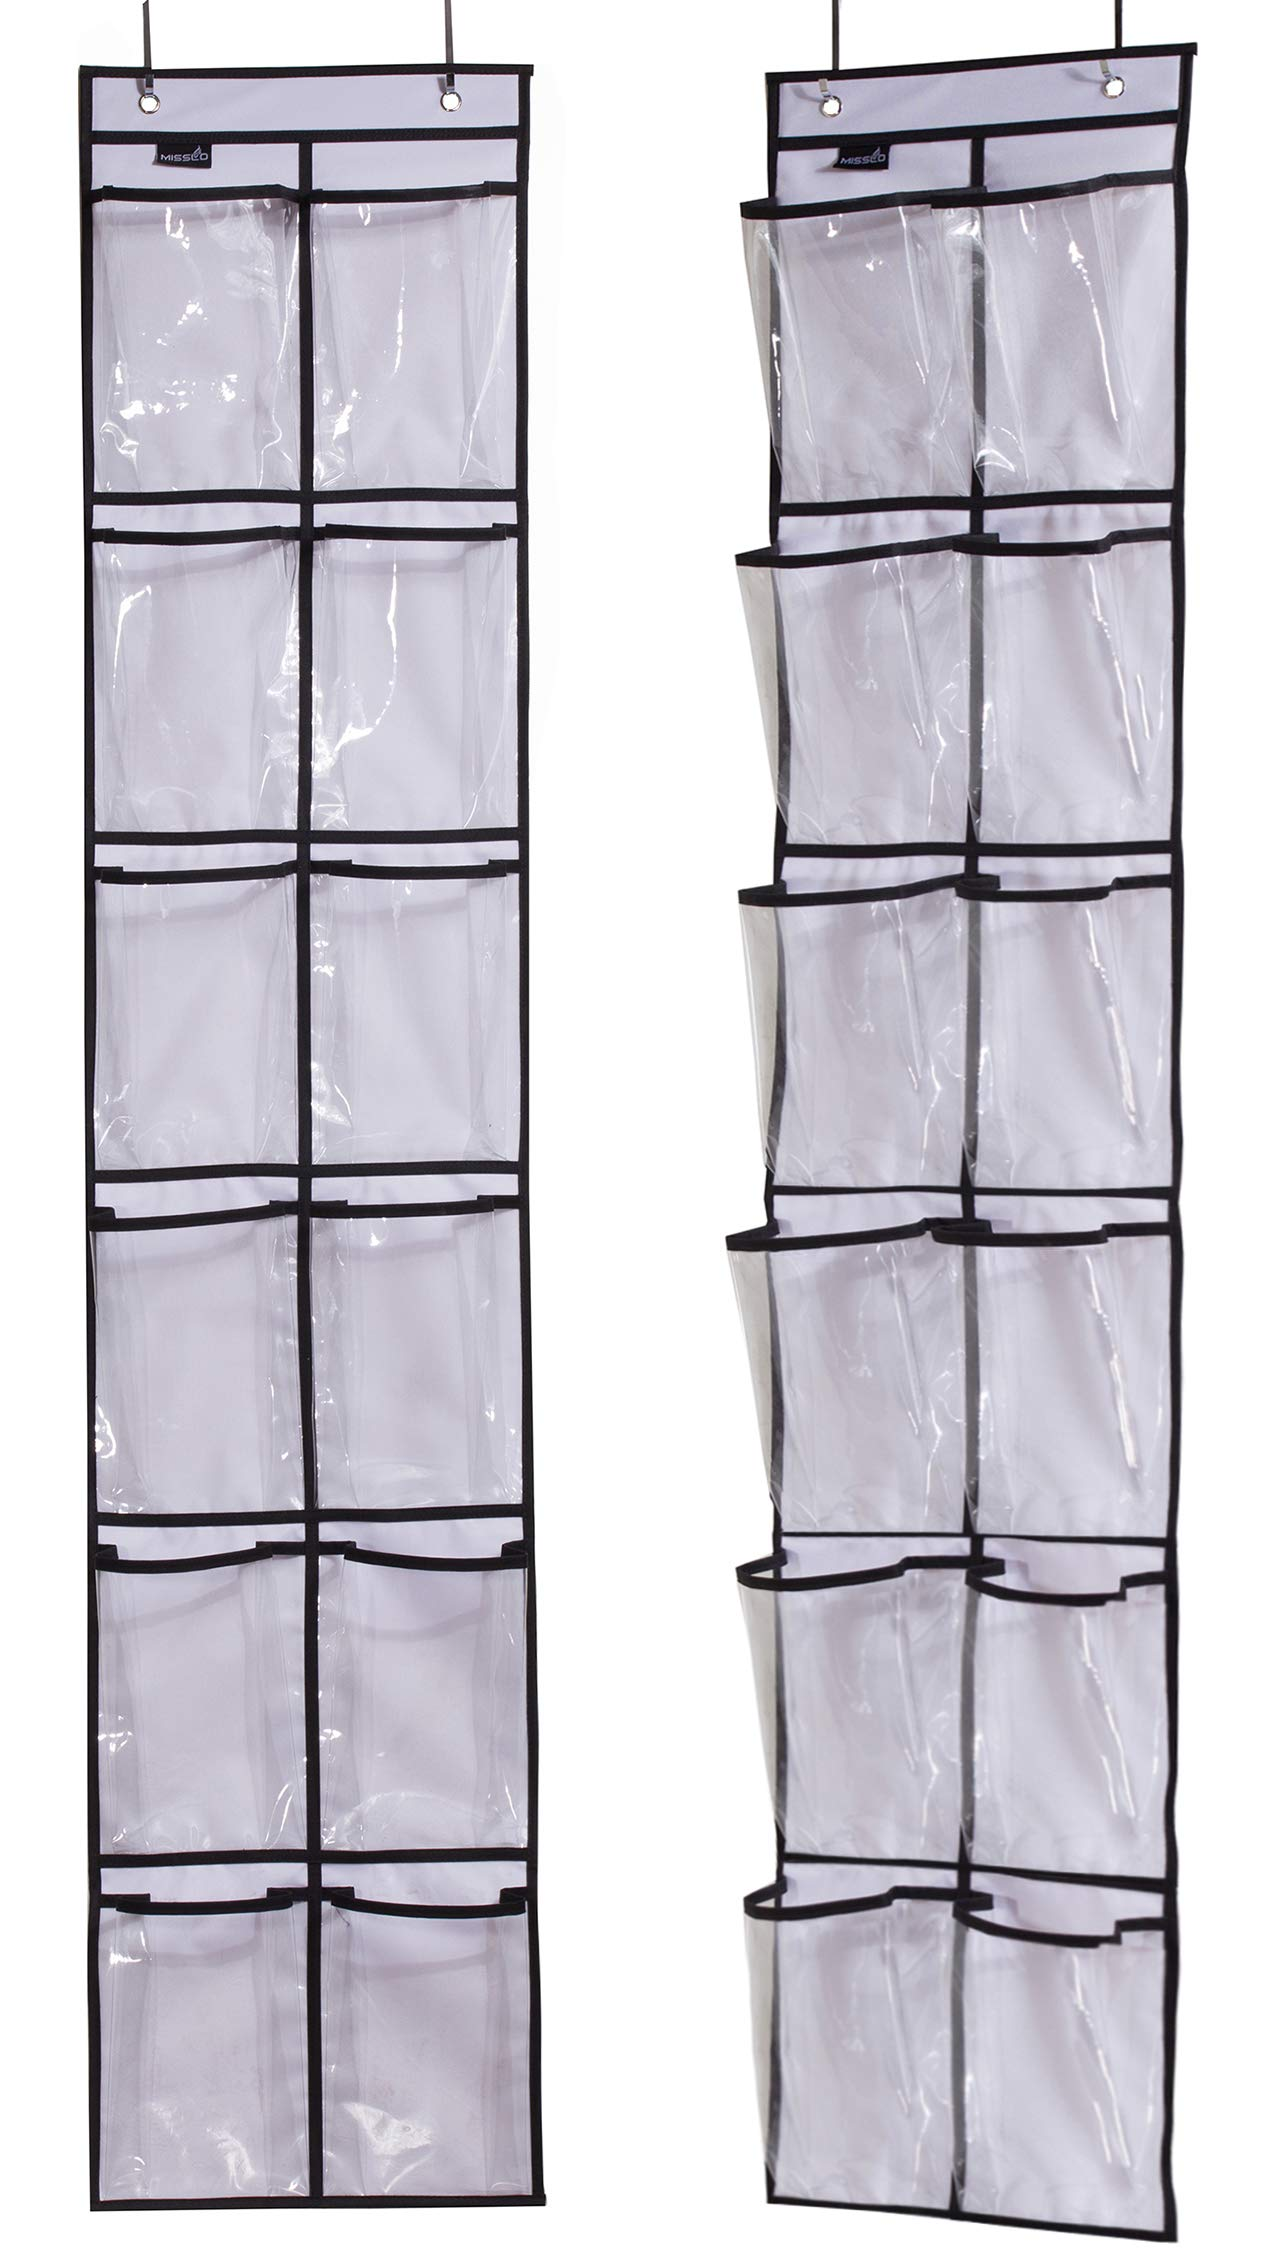 MISSLO Over The Narrow Door Shoe Organizer with 12 Crystal Pockets Hanging Closet Door (2 Packs, White) by MISSLO